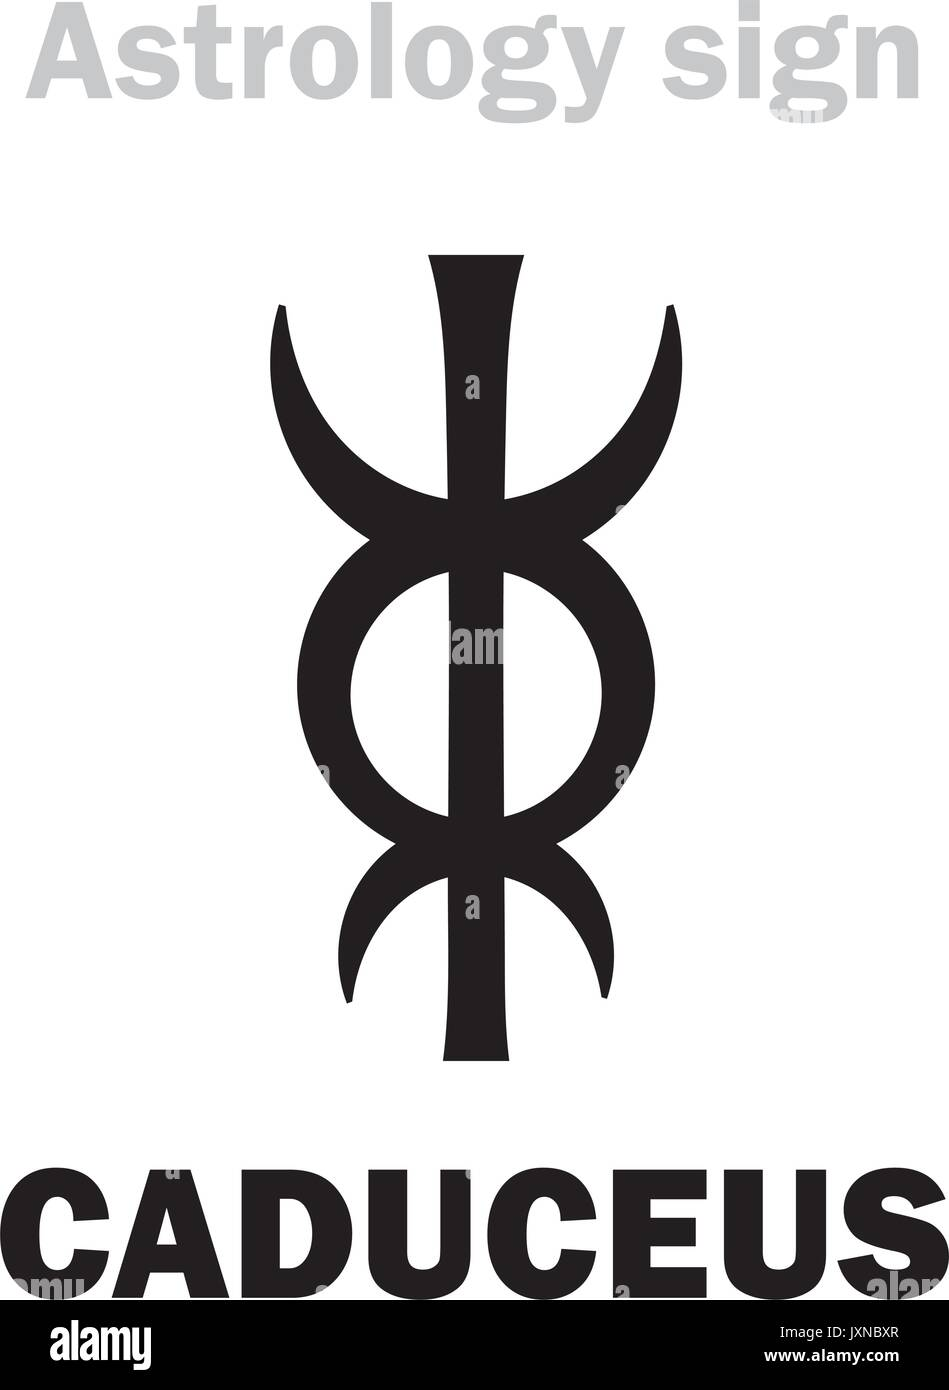 Astrology Alphabet: CADUCEUS of Mercury (or Hermes, or Apollo, or Aesculapius). Hieroglyphics character sign (single symbol). - Stock Vector